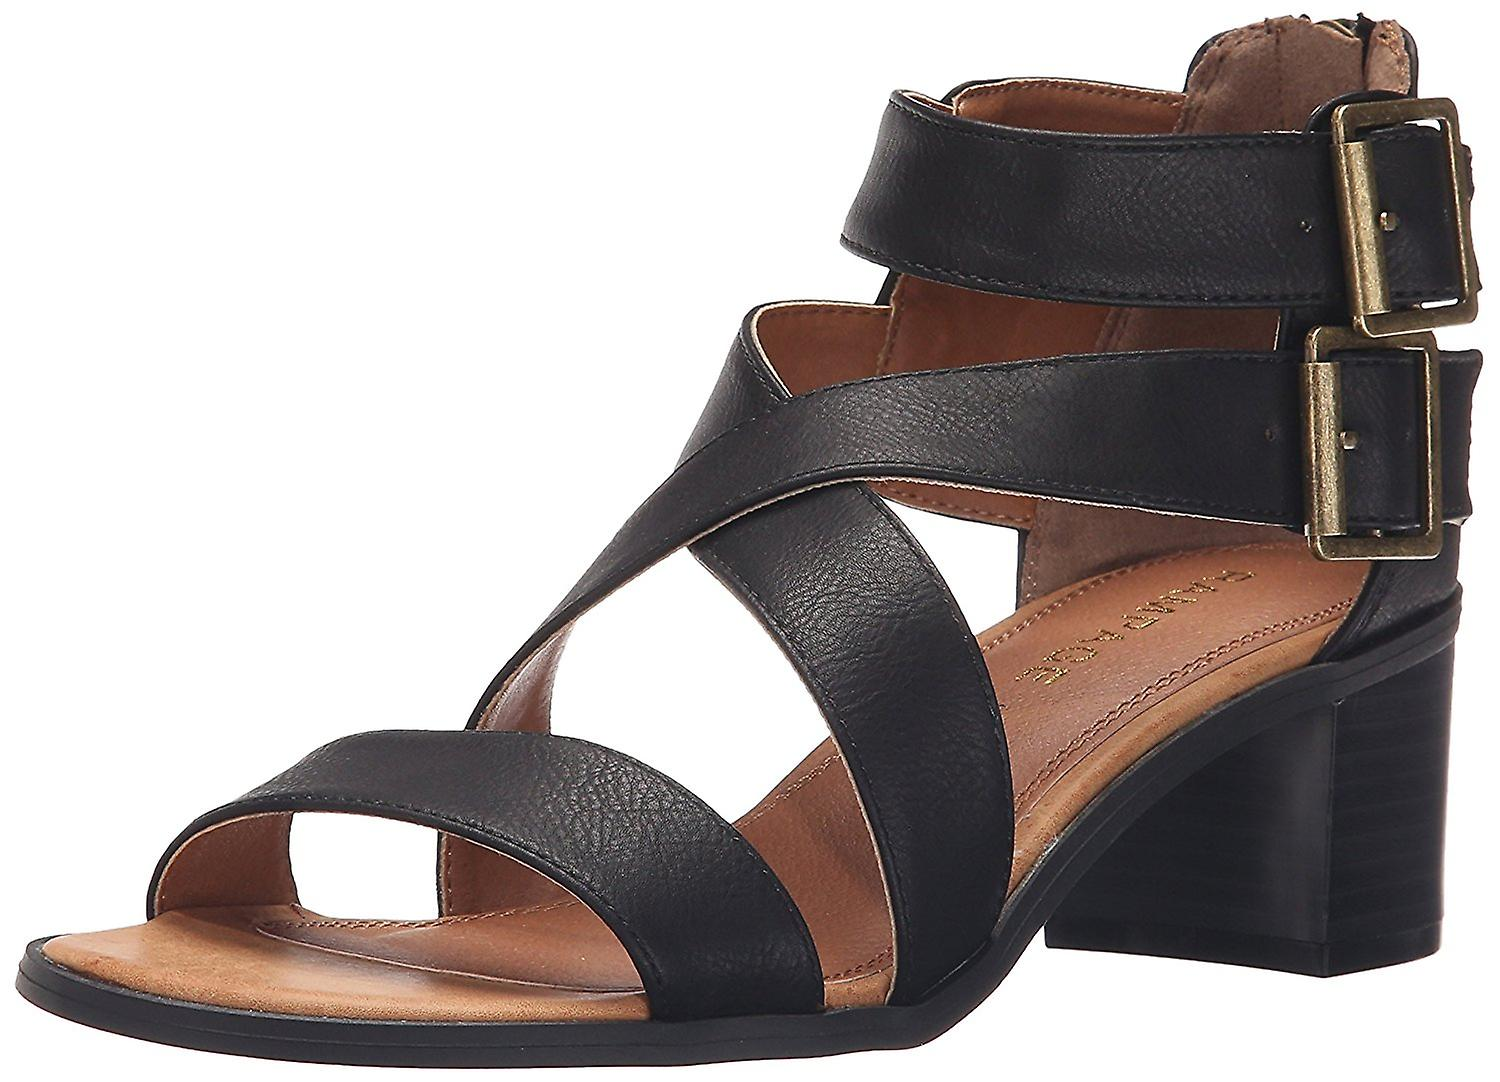 Rampage Womens Havarti Open Toe Casual Ankle Strap Sandals Q7jb0